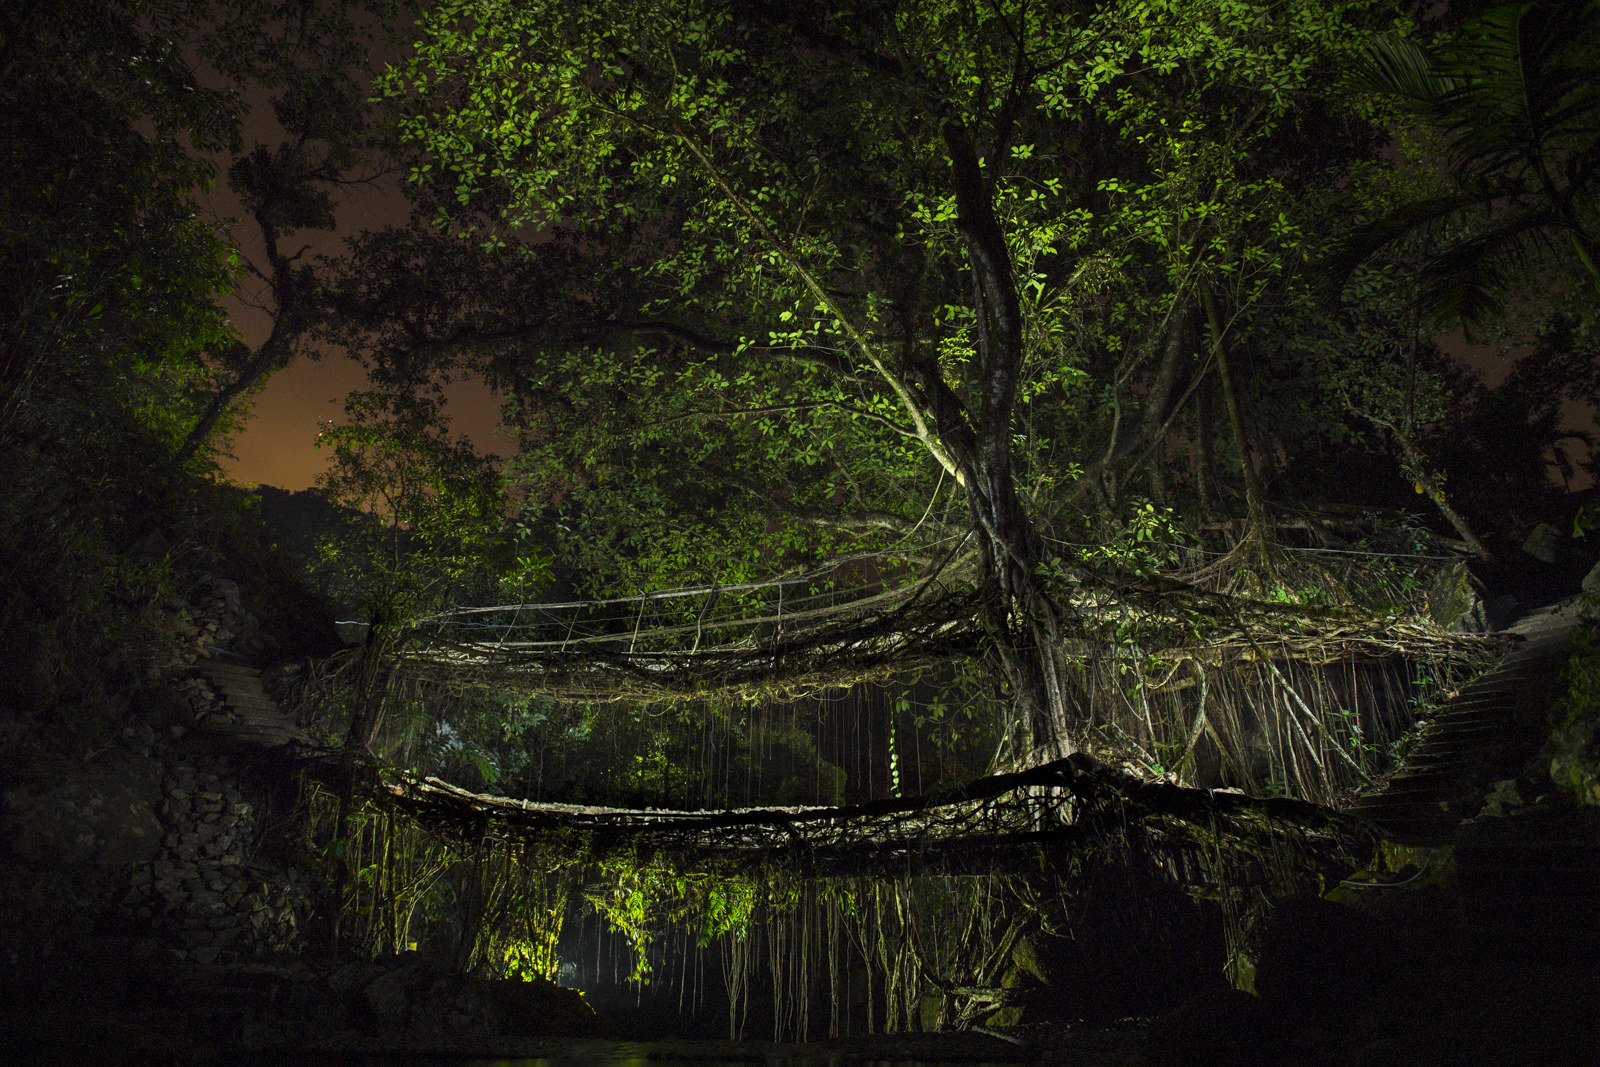 A tree seen at night with a complicated root structure that suspends the tree